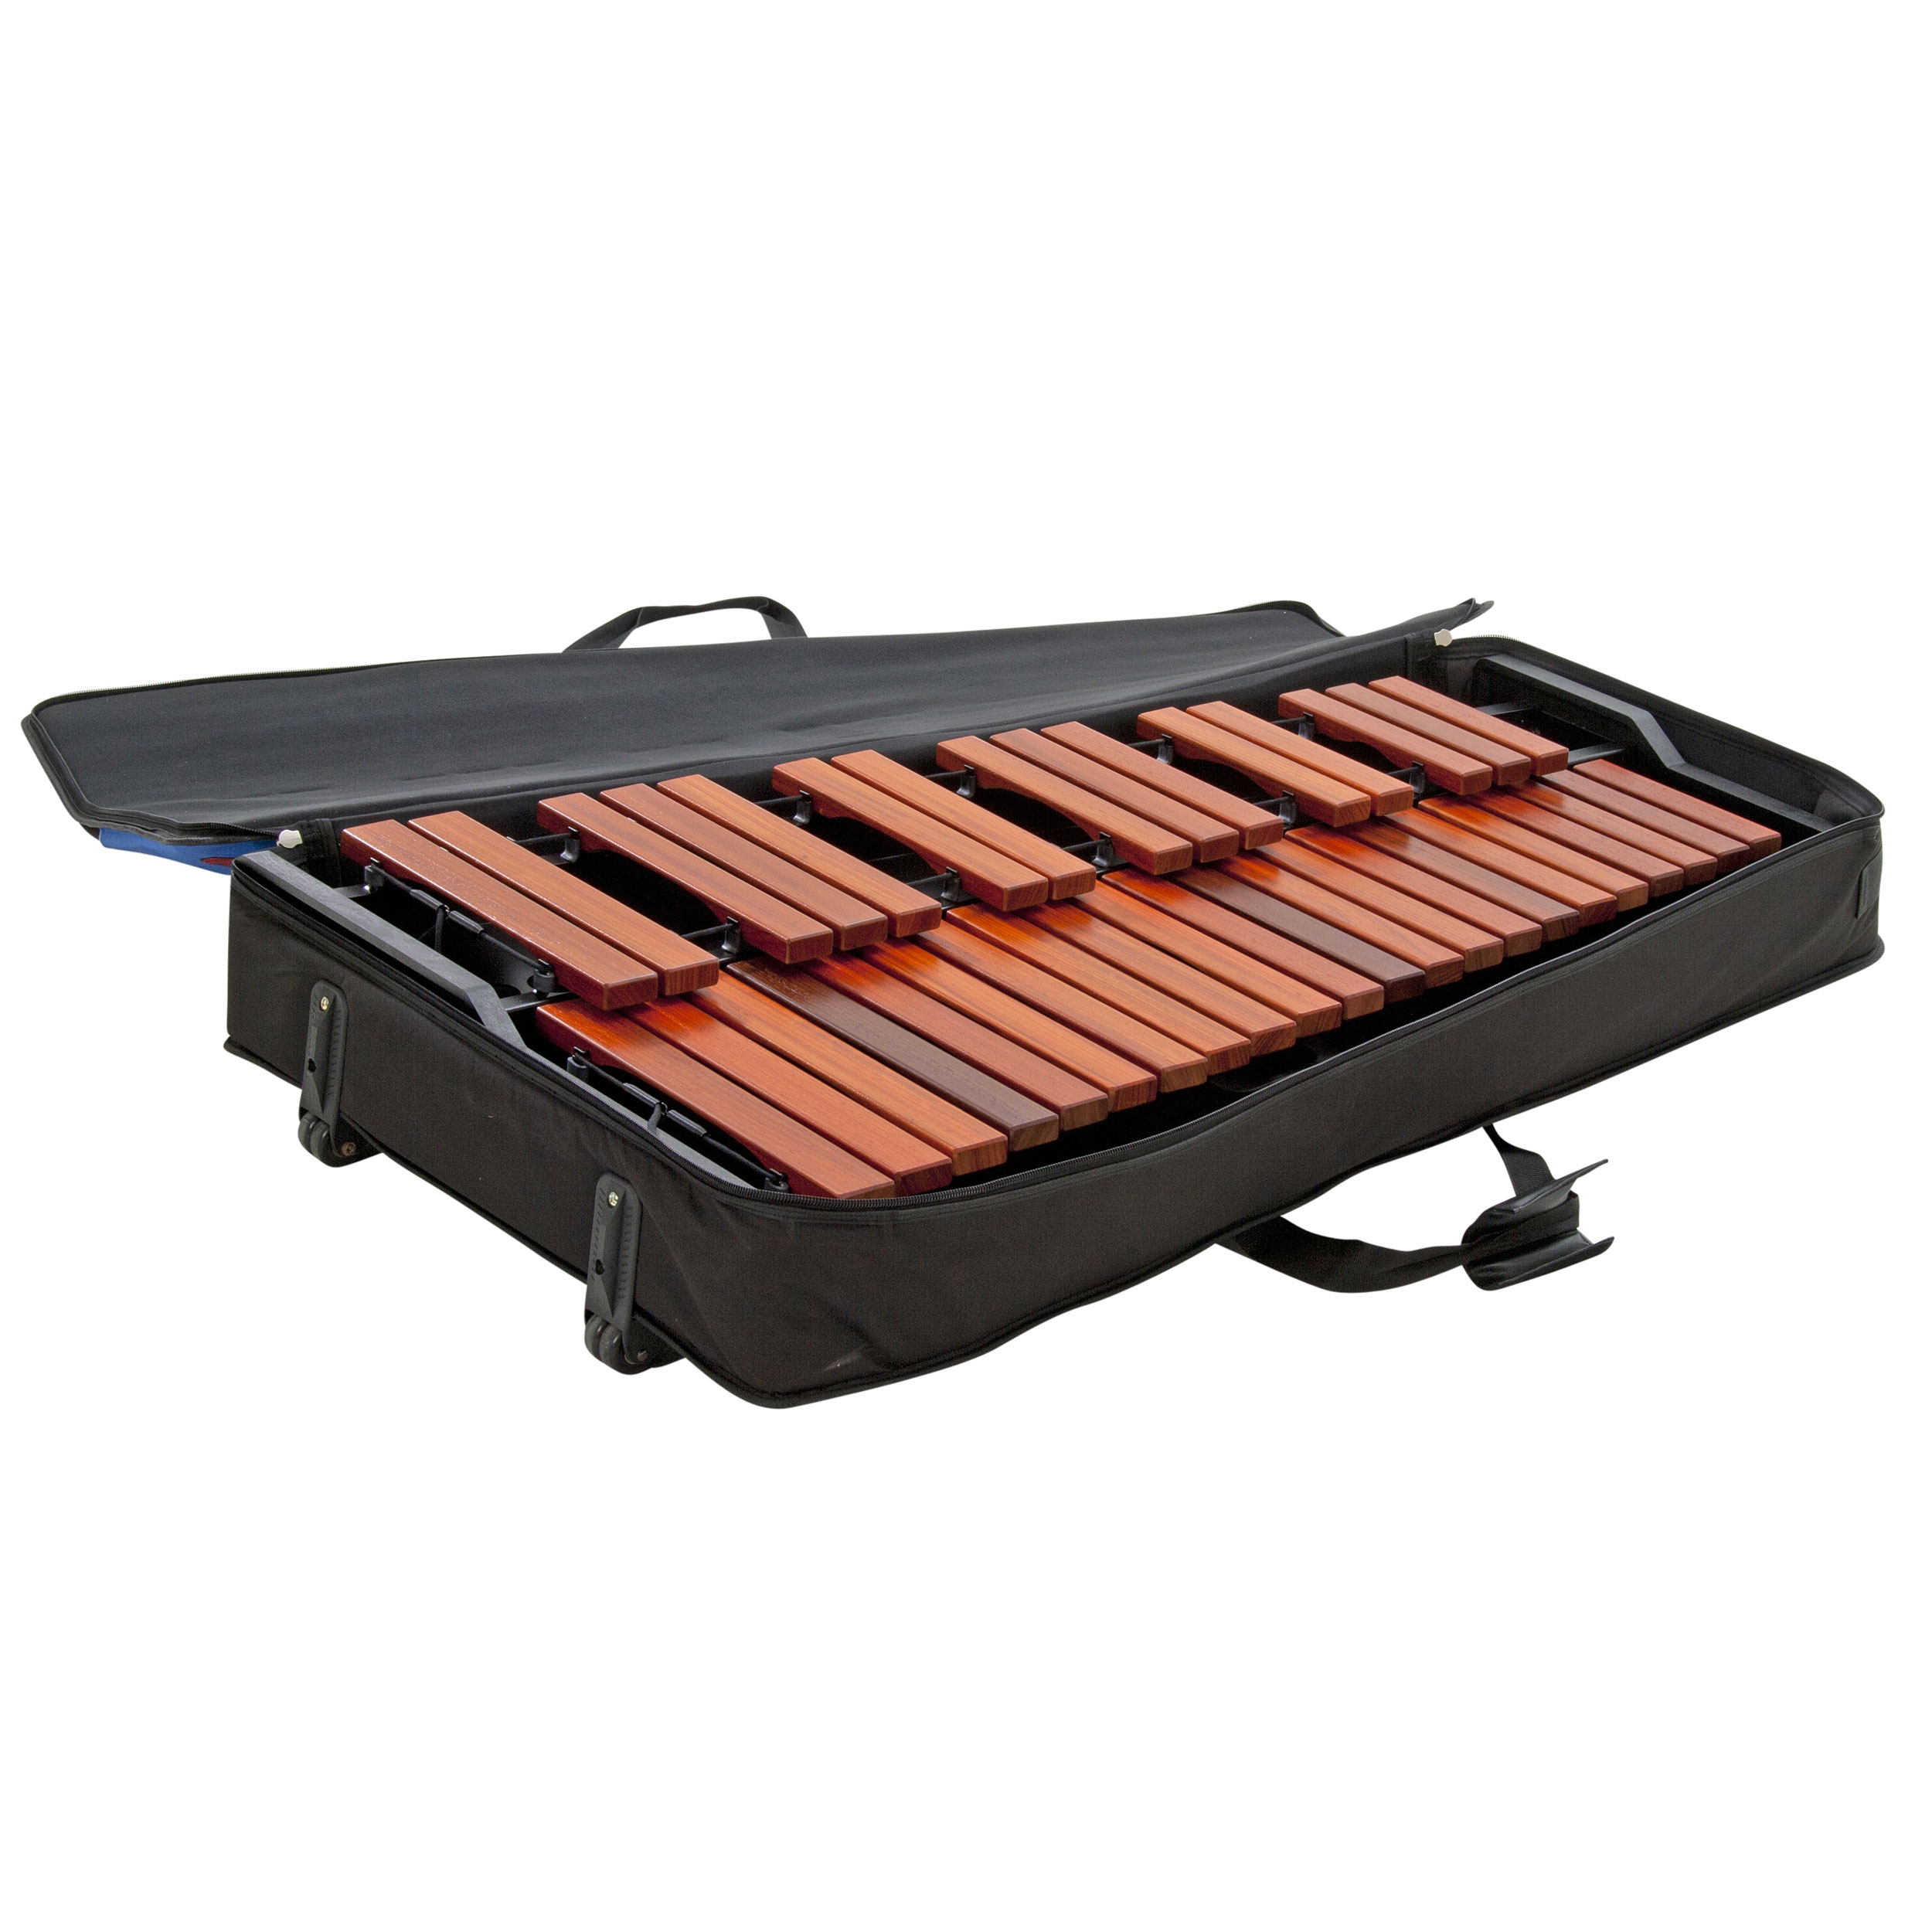 Adams Soft Bag with Wheels for 3.0 Octave Academy Marimba